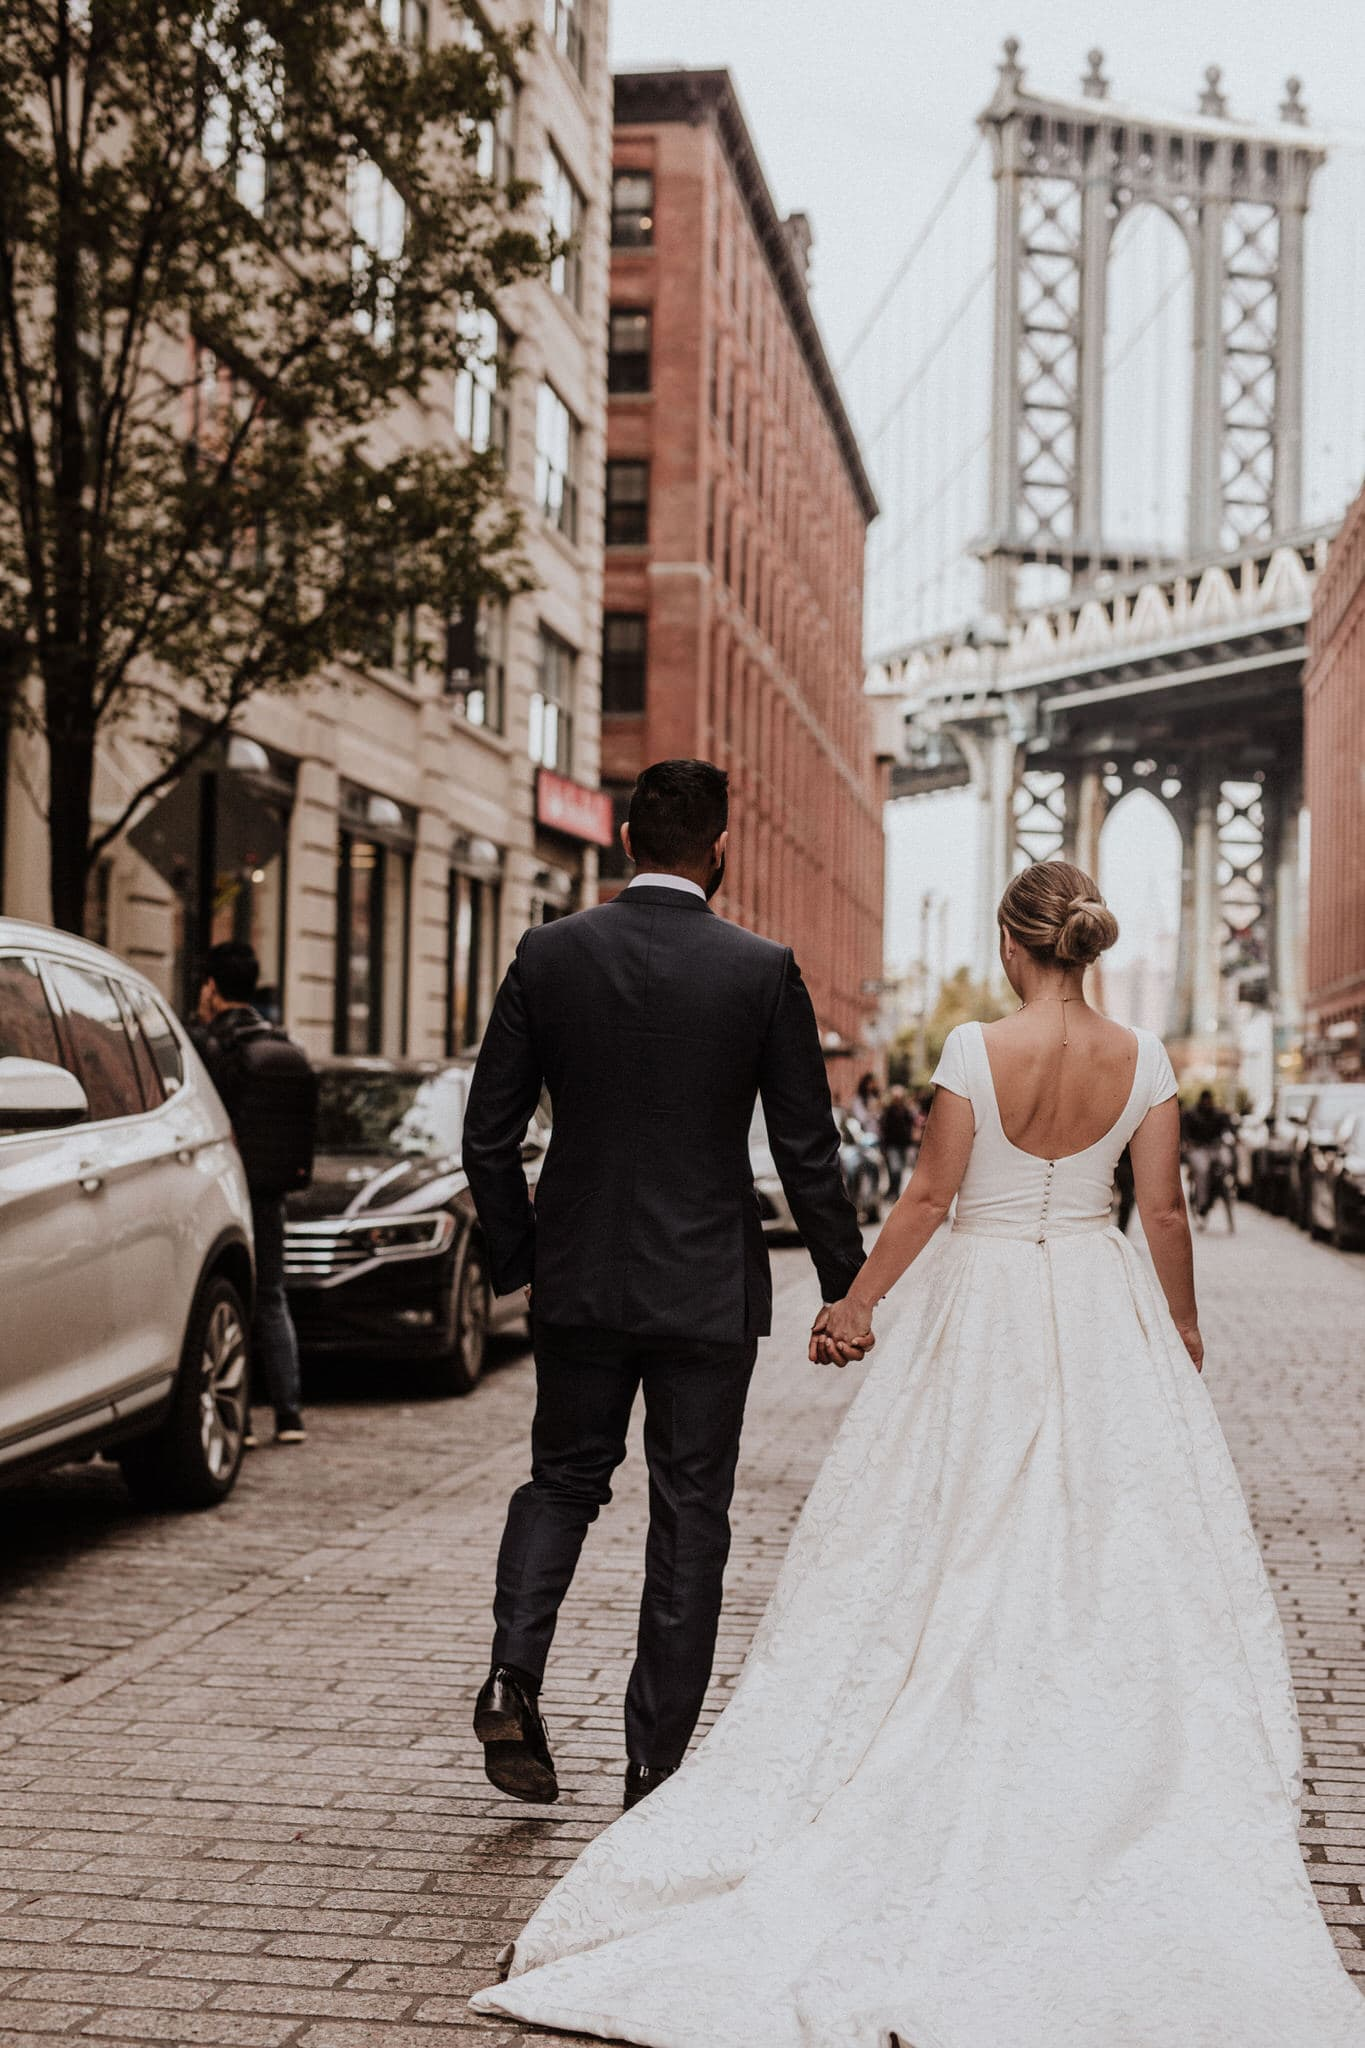 The bride and groom walk along a cobblestone street in Brooklyn, New York. Wedding Photographer Brent Calis.